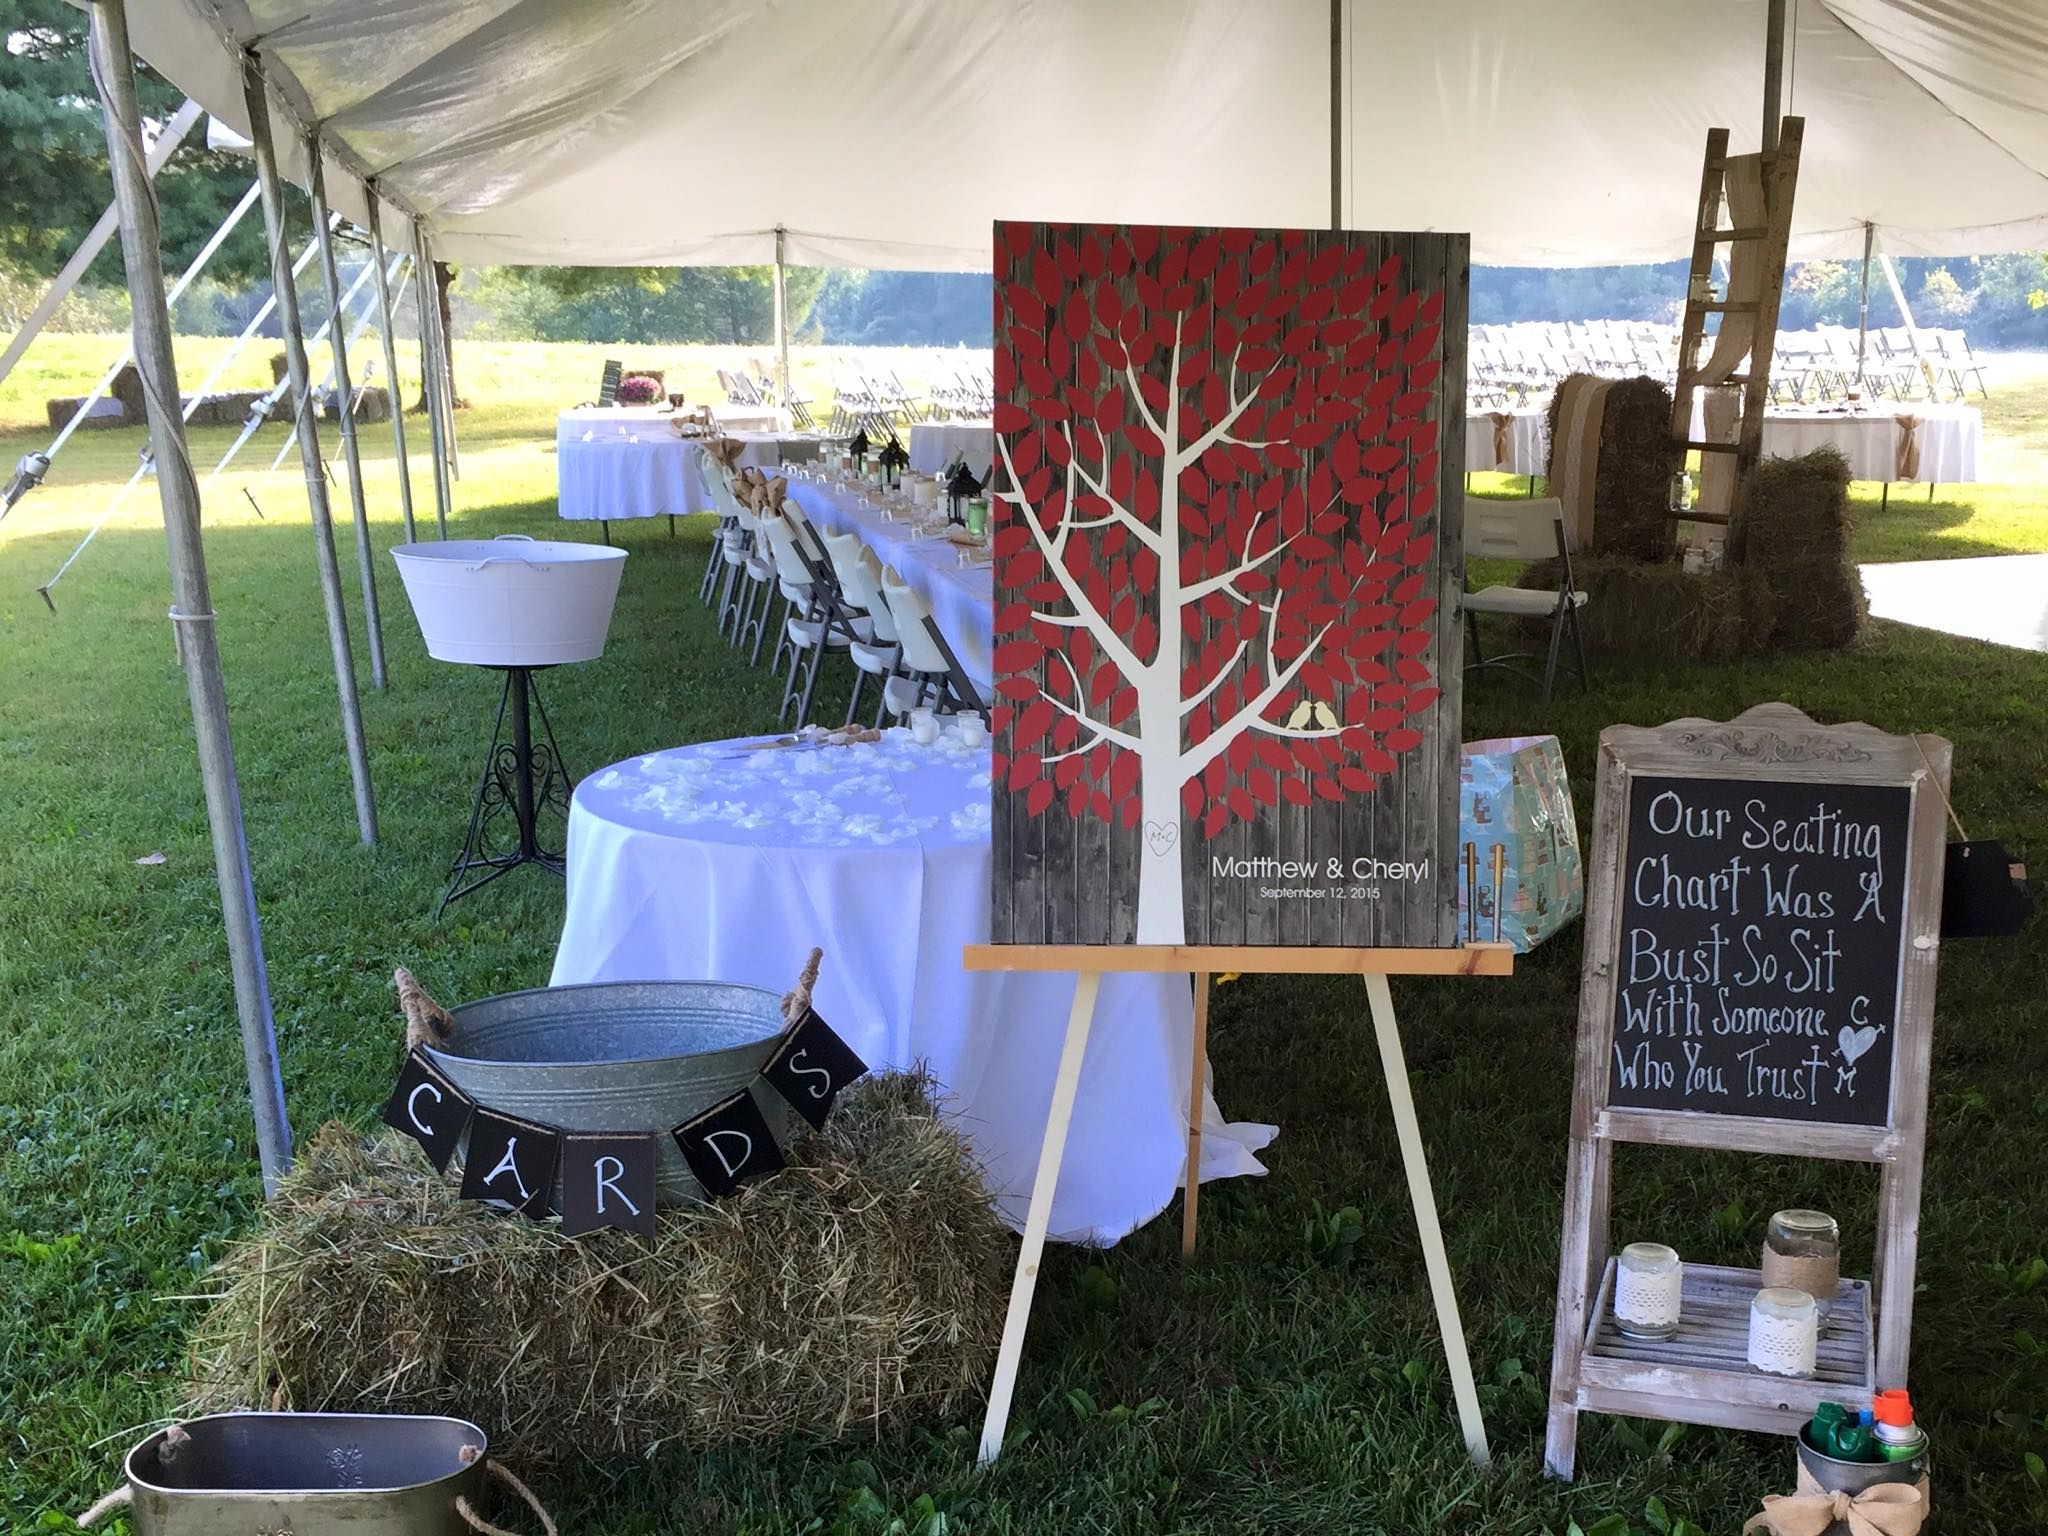 Darkwood Wedding Tree Canvas | Guest Book Alternative | Rustic Wedding | Customer Photo - Cute Display! | Wedding Color - Burgundy | peachwik.com